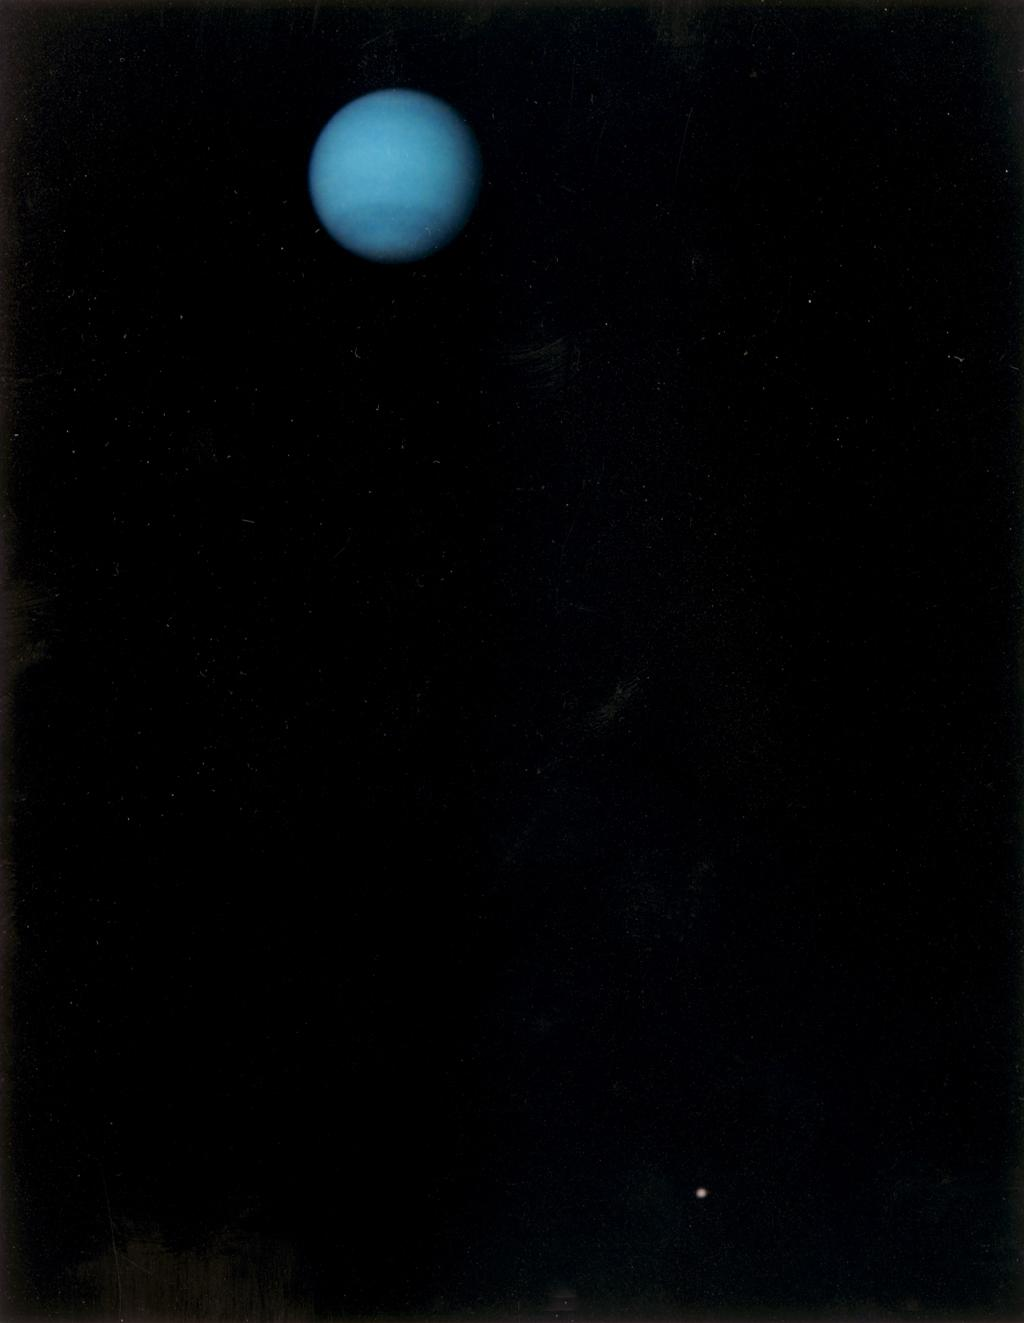 This image was returned by NASA's Voyager 2 spacecraft on July 3, 1989. The planet and its largest satellite, Triton, are captured in view; Triton appears in the lower right corner at about 5 o'clock relative to Neptune.